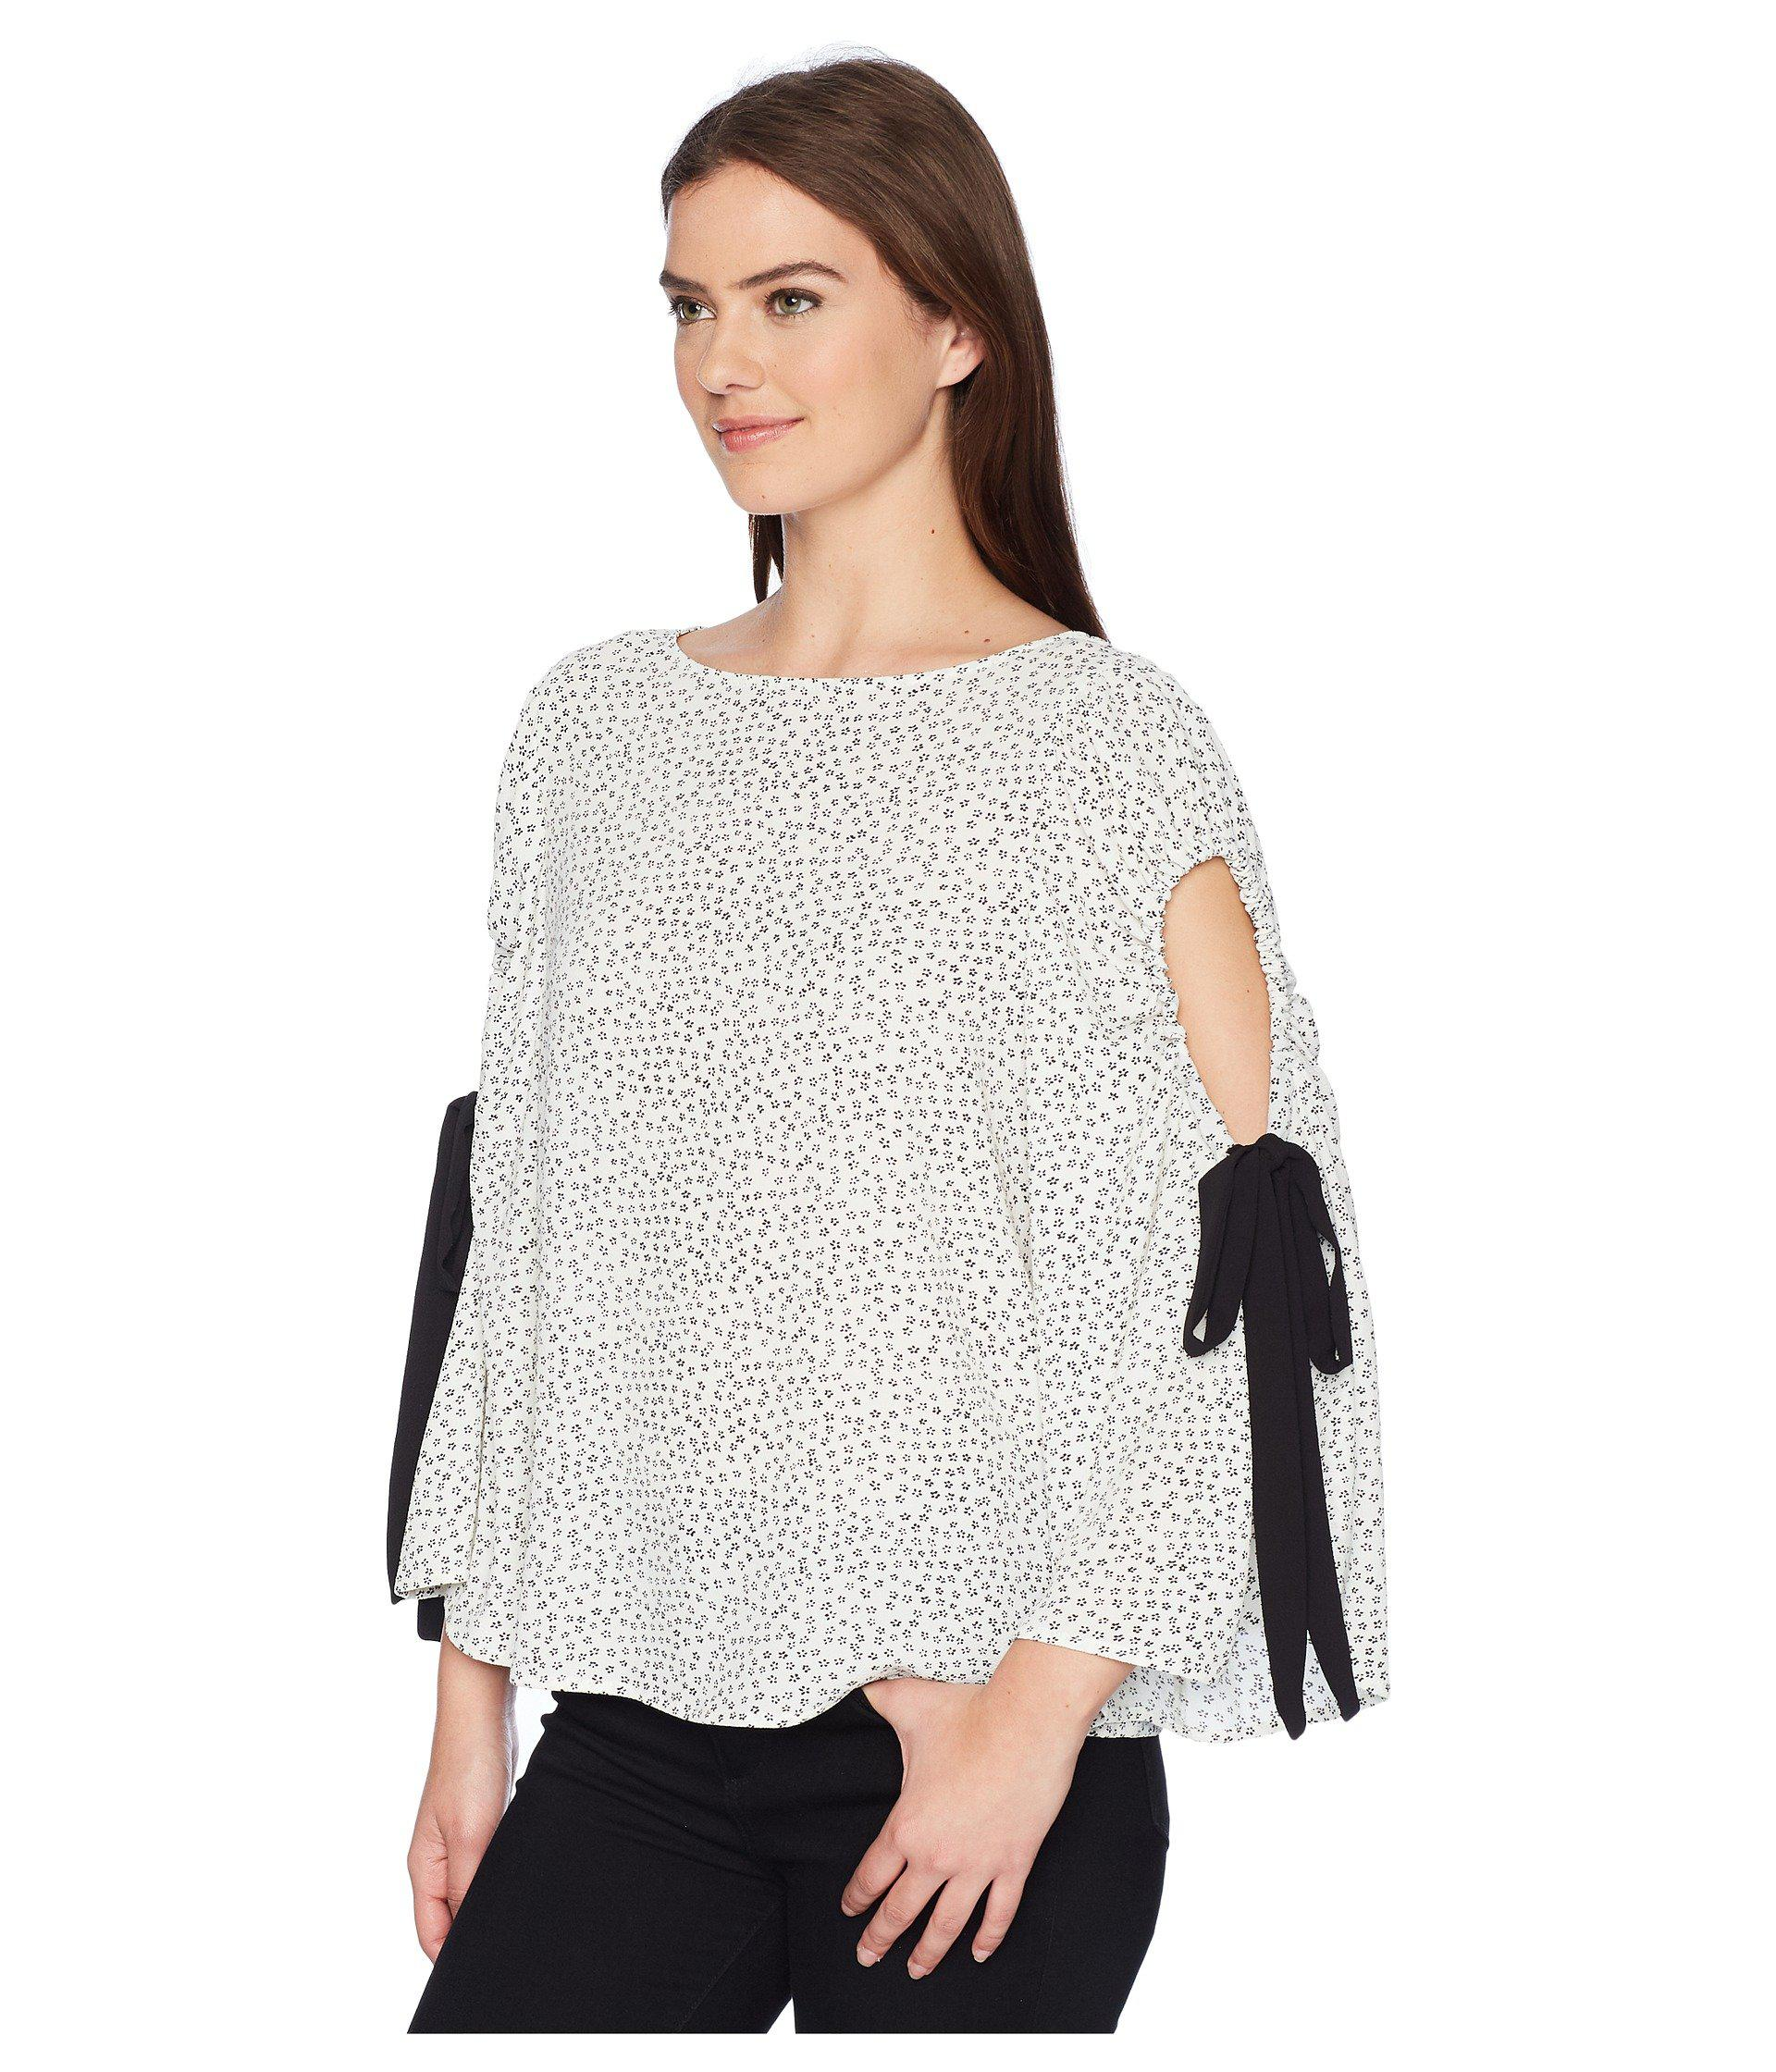 31efb2dee93072 Lyst - Vince Camuto Bell Sleeve Flower Ditsy Tie Cold Shoulder Blouse in  White - Save 38%